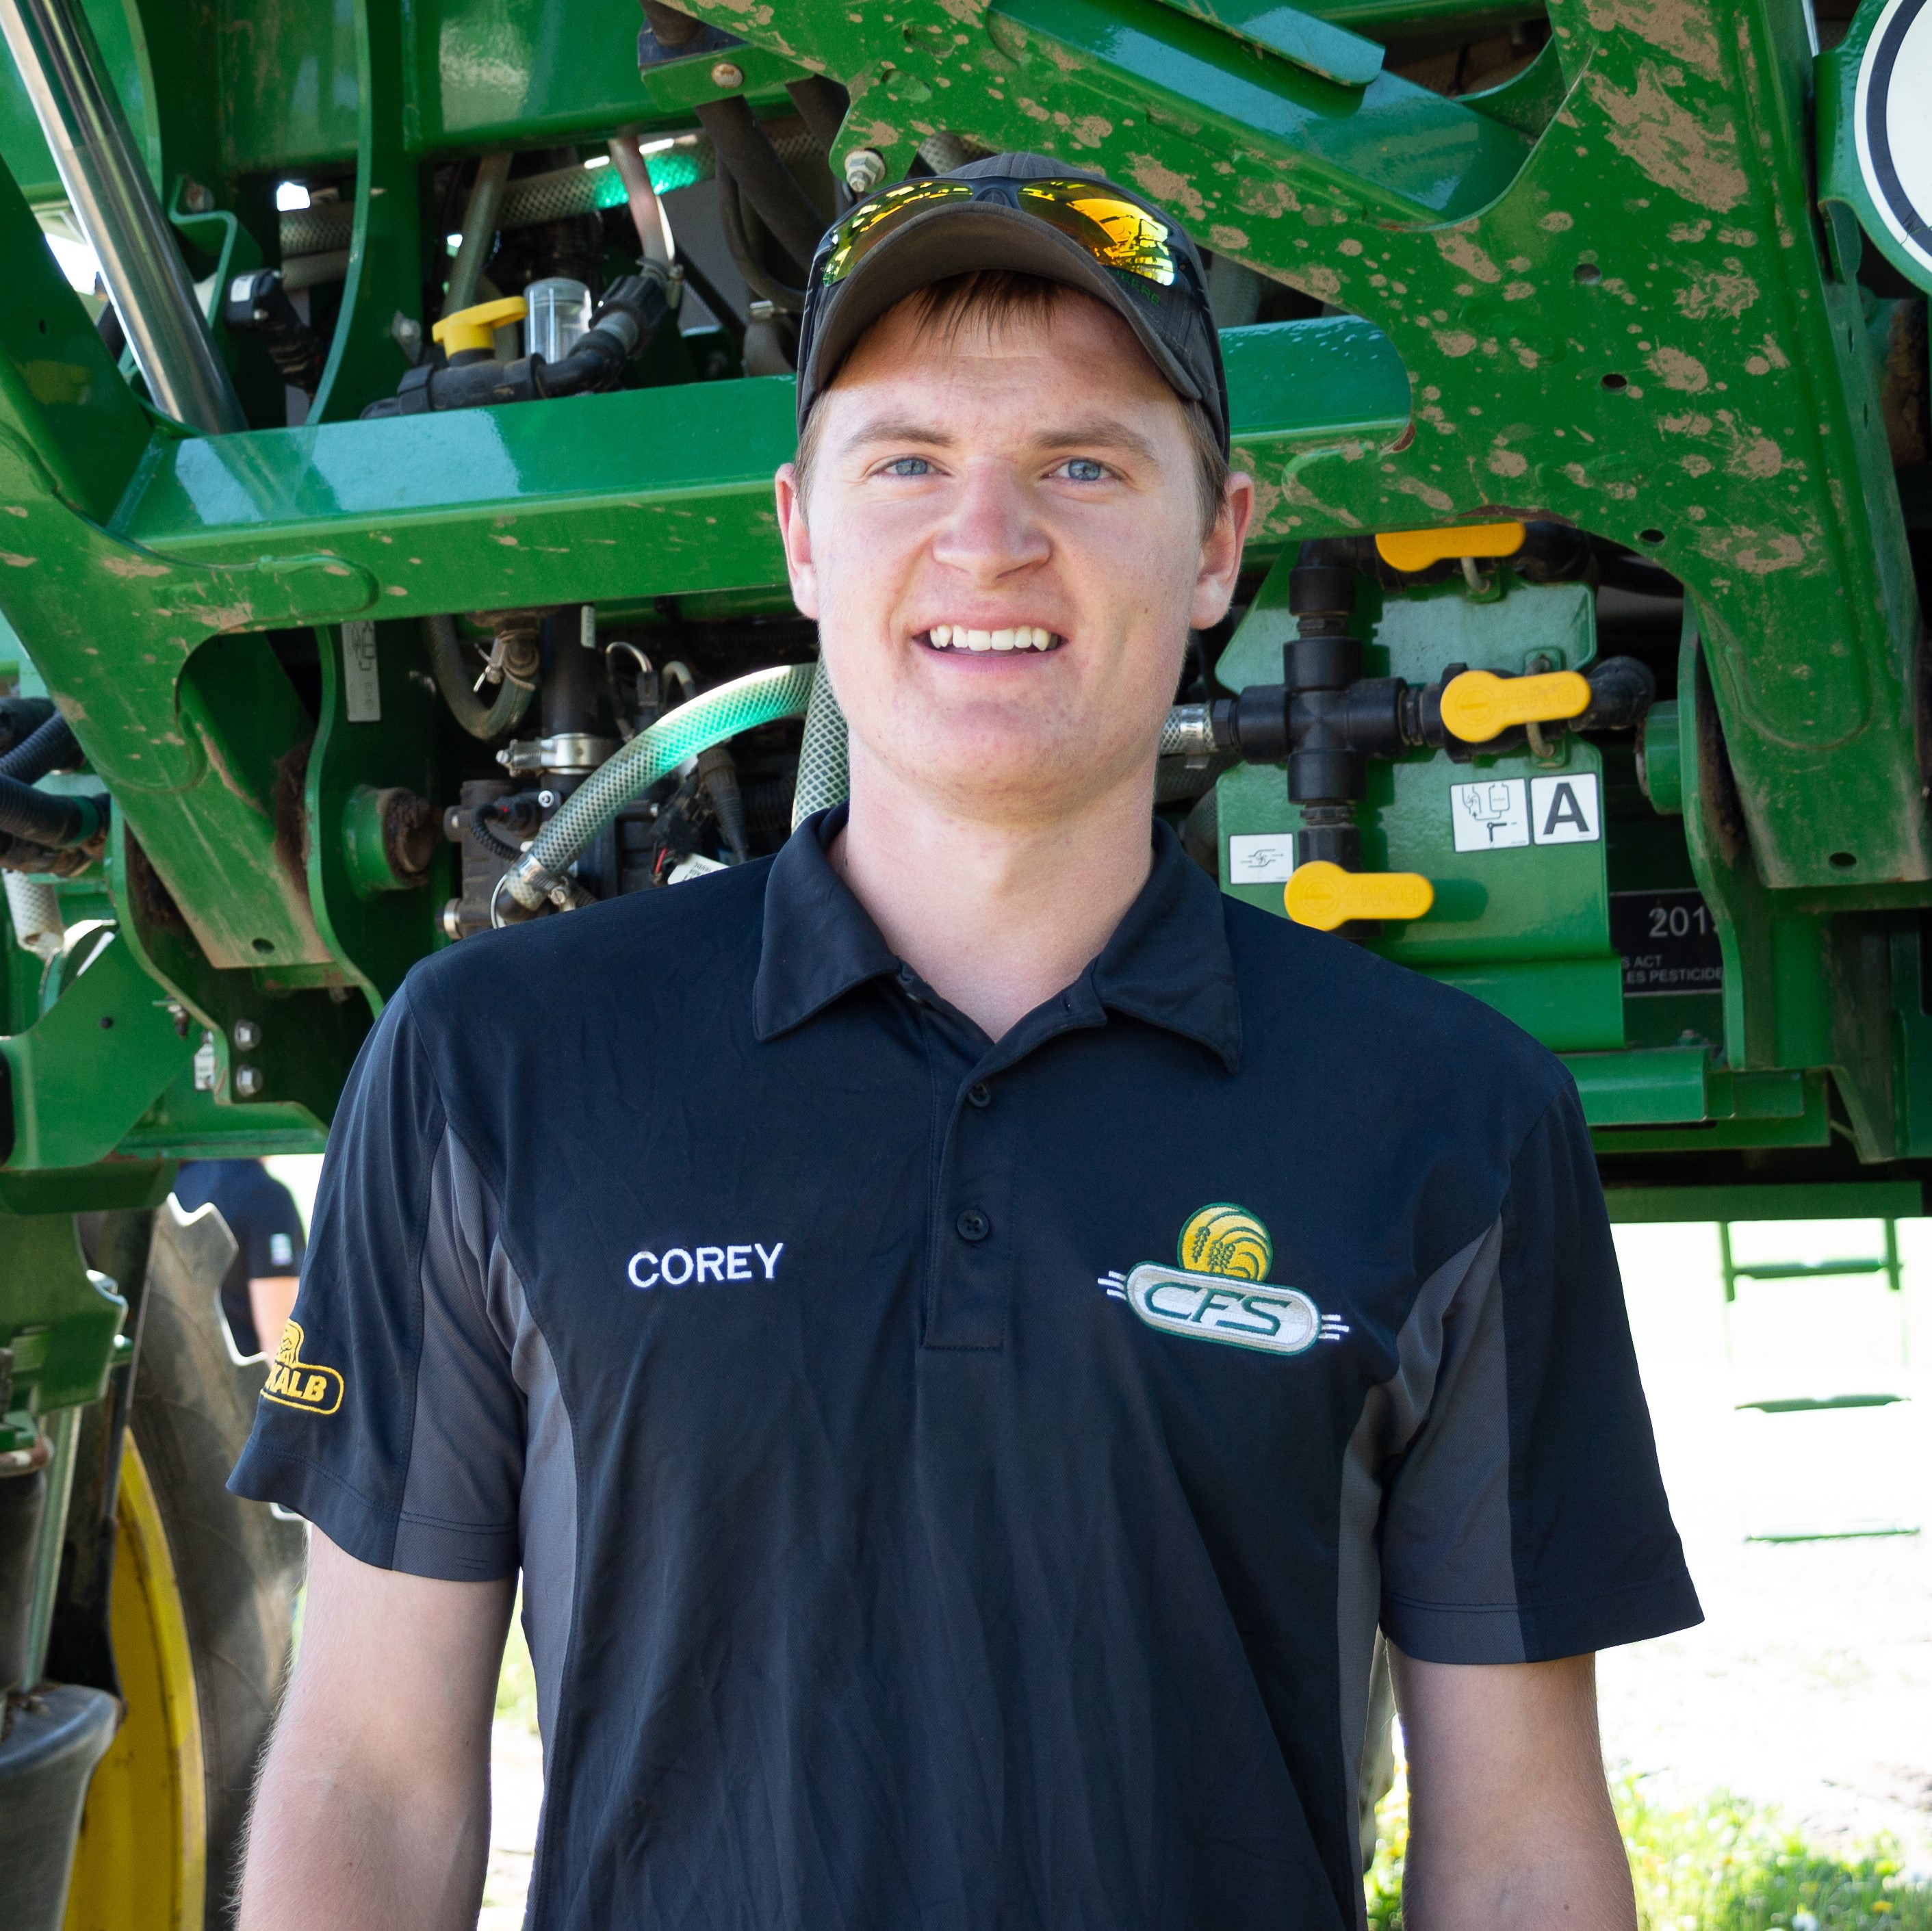 Corey FreySprayer Operator Corey grew up on a cash crop farm outside of Listowel. He joined CFS as a tender driver in 2017 and is now a licensed exterminator and our main sprayer operator at CFS. Corey continues to pursue his interest in the cropping industry.